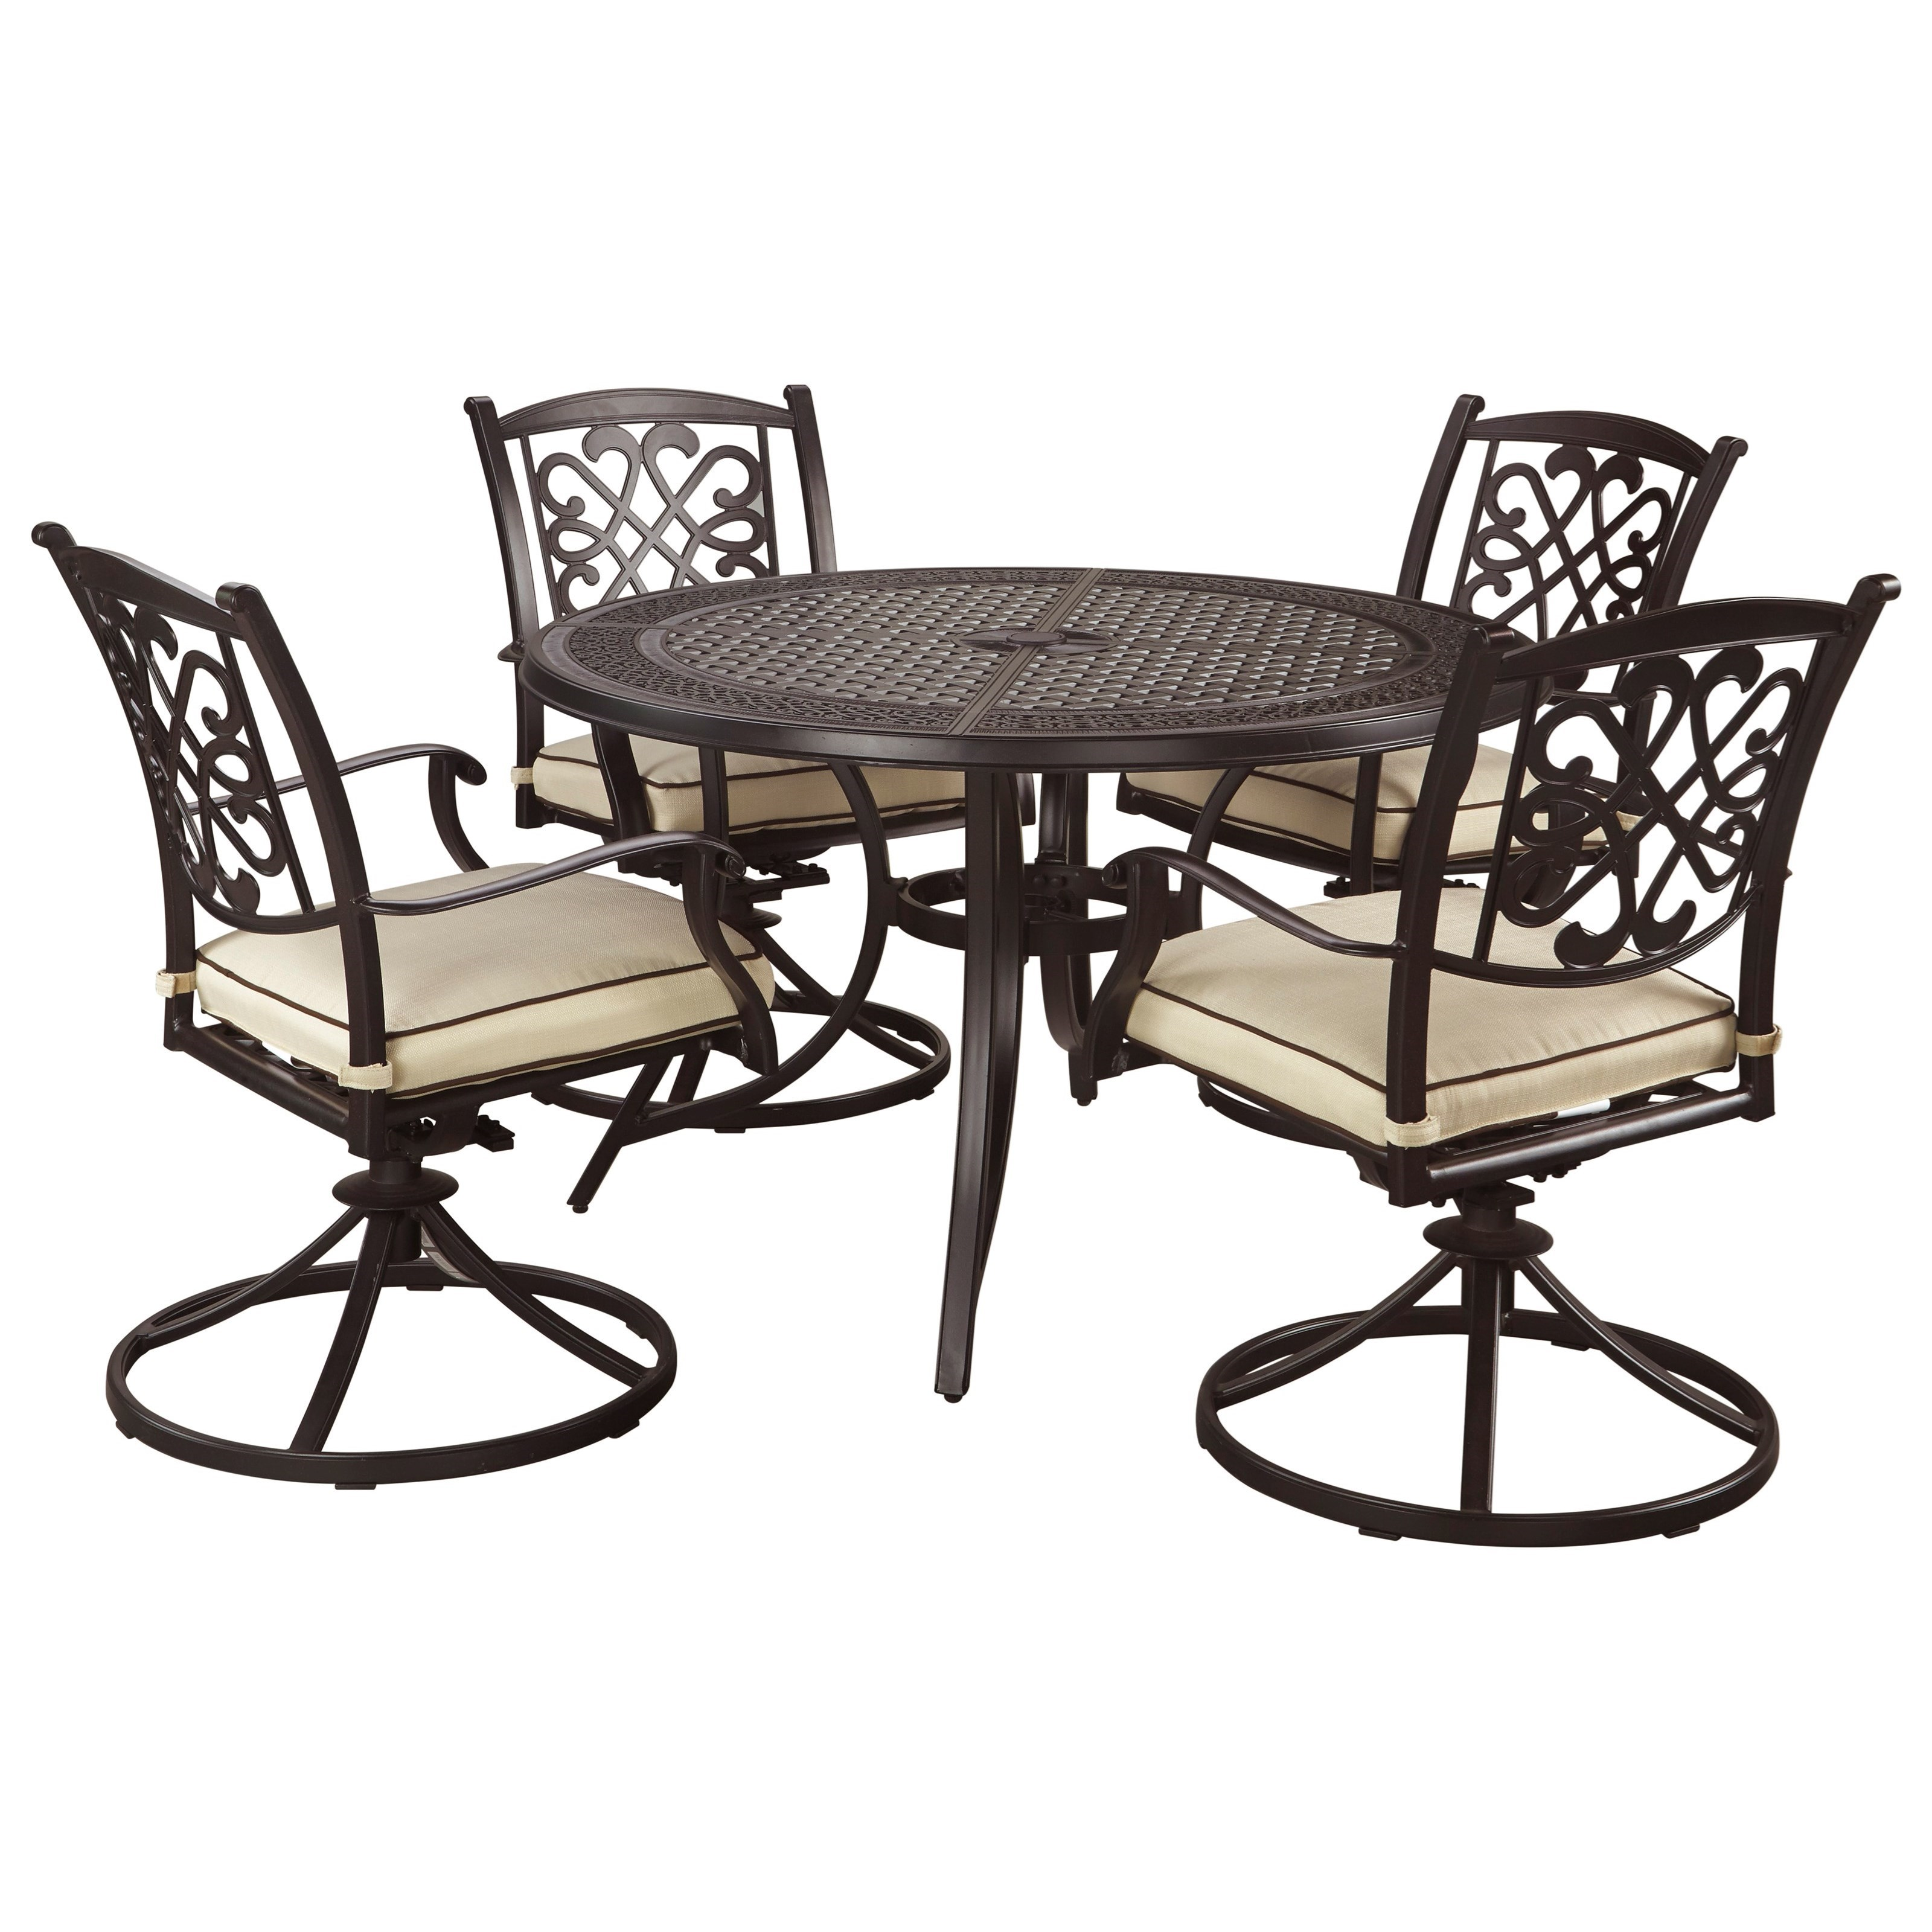 Signature Design by Ashley Burnella 5-Piece Outdoor Dining Set - Item Number: P456-615+2x602A